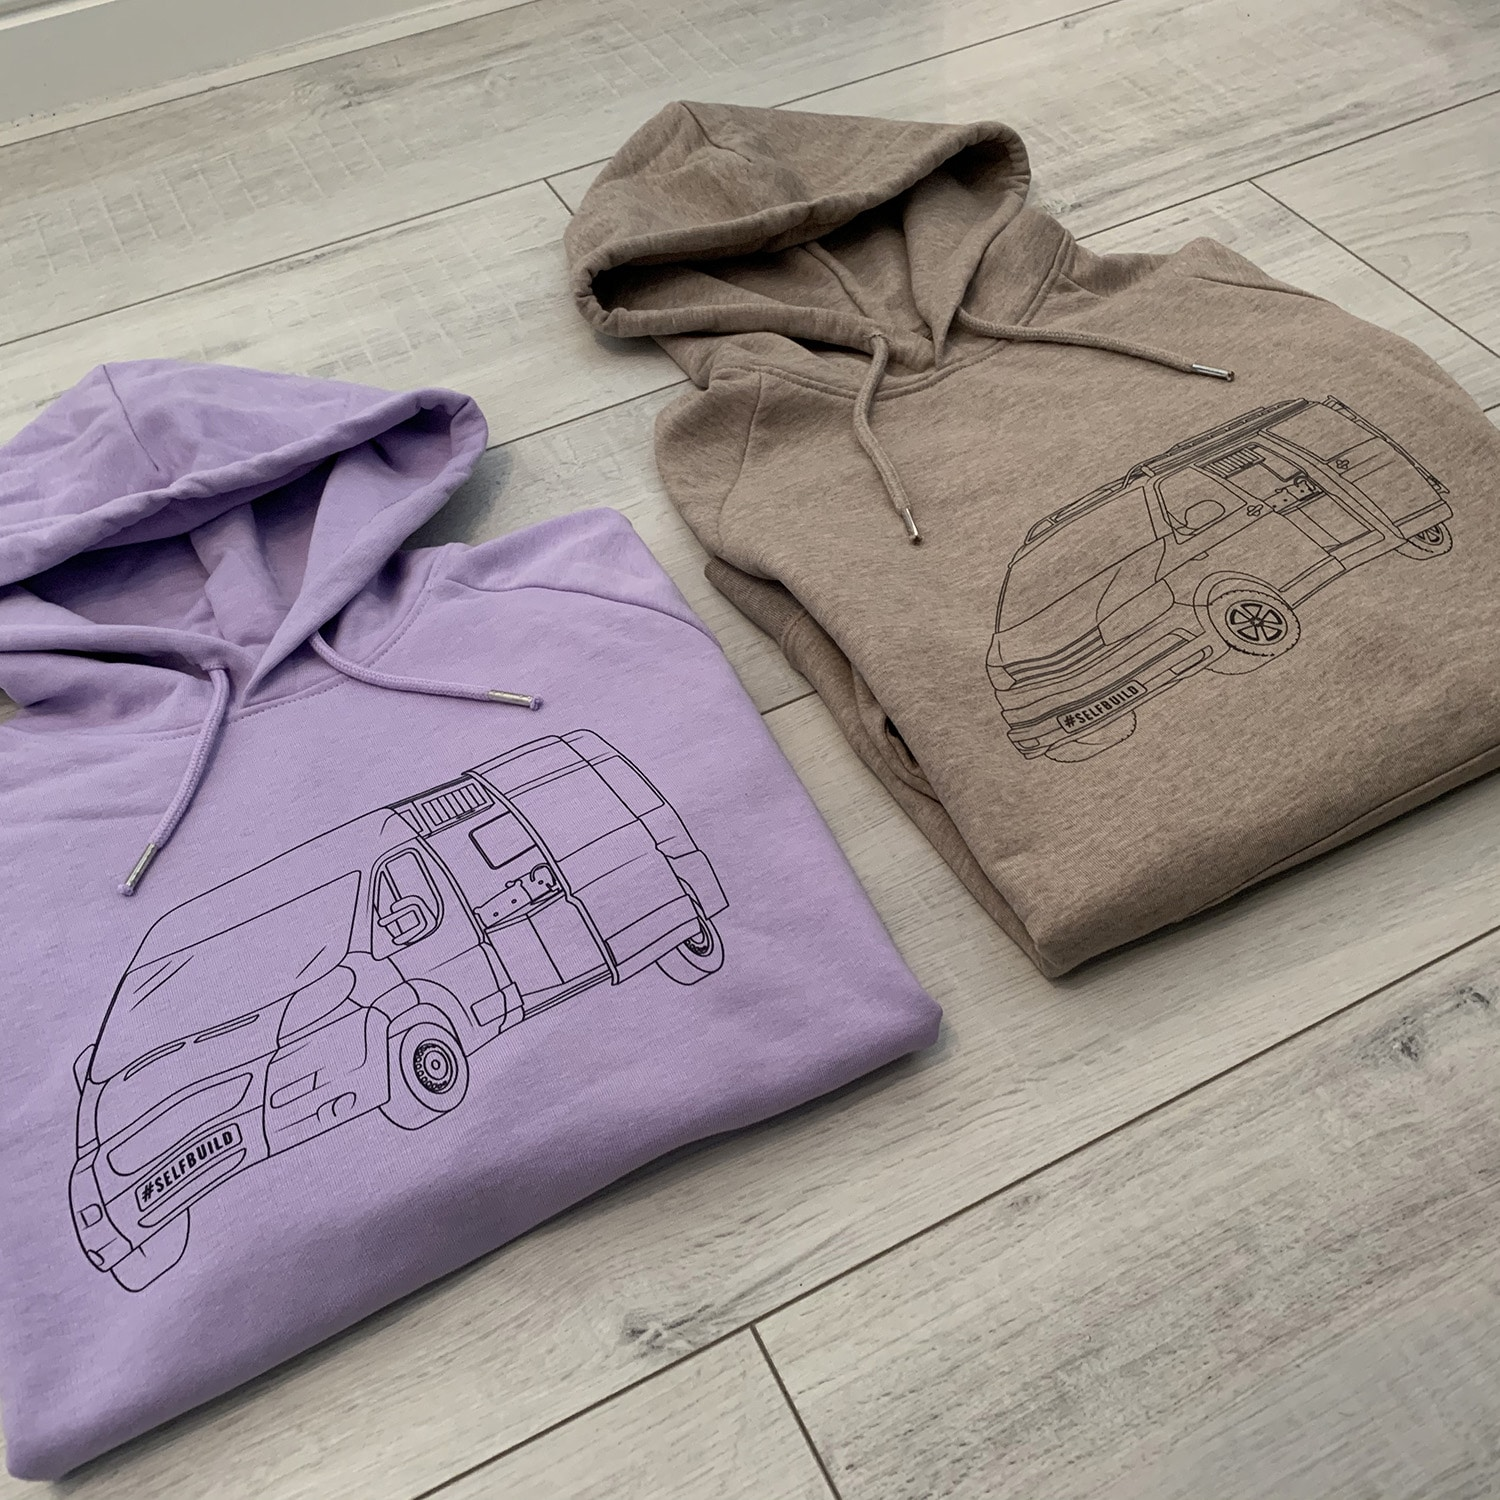 Both our womens campervan hoodie colours of roaming sand and wild lavender showing a relay campervan and t6 transporter campervan - truly great camper van gift